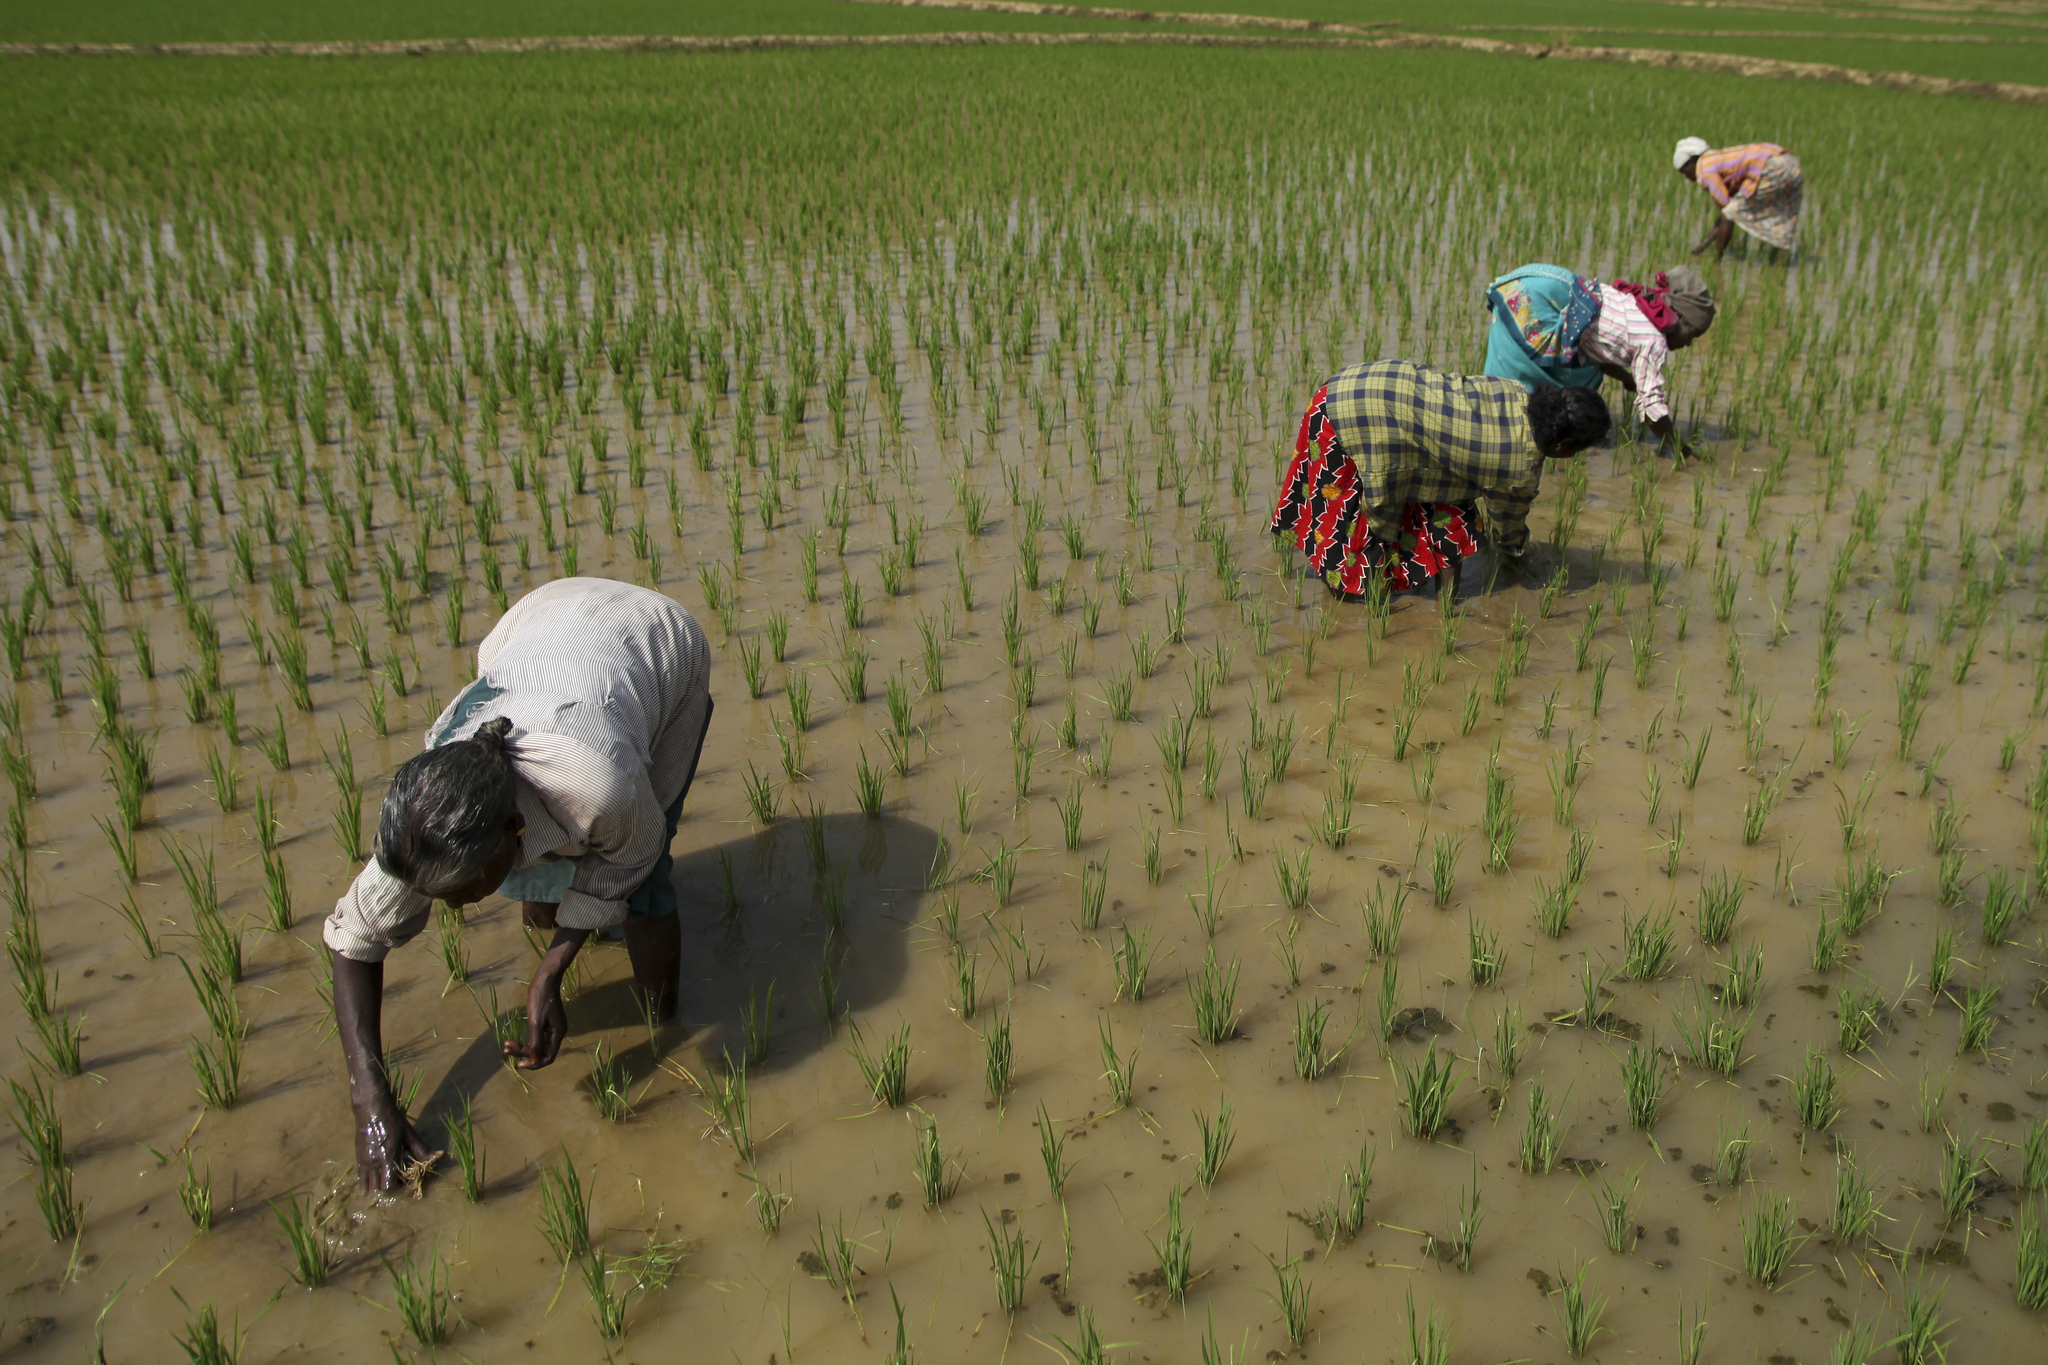 The Life of Labour: Wayanad's Farmers Wary of Promises; Silent Death of Workers